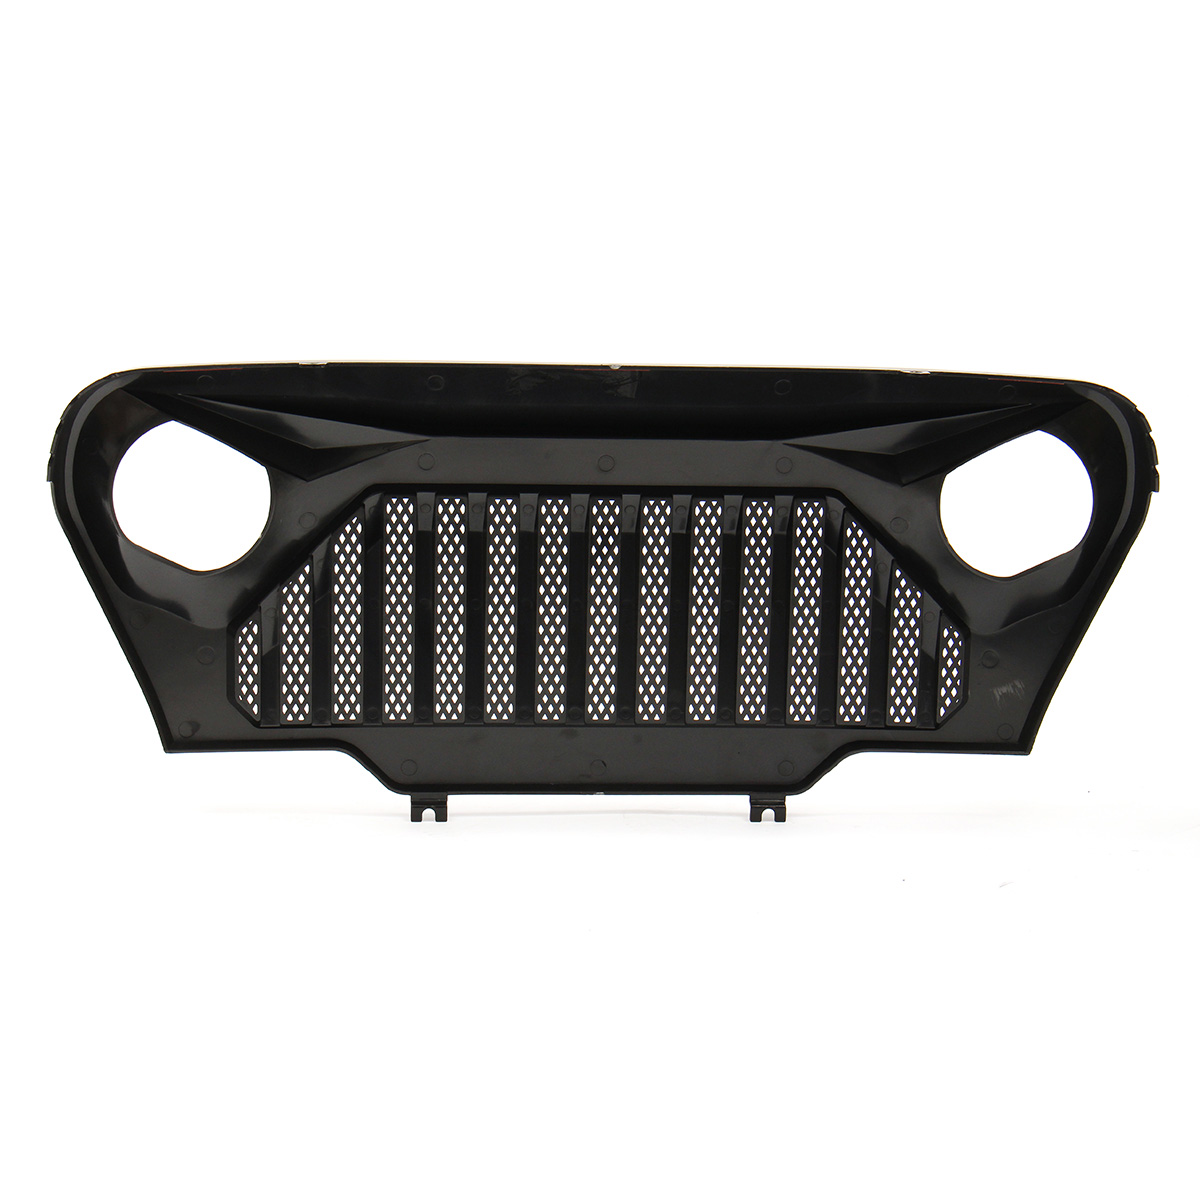 Grill Insect Resistant Net For Jeep Wrangler TJ 97-06